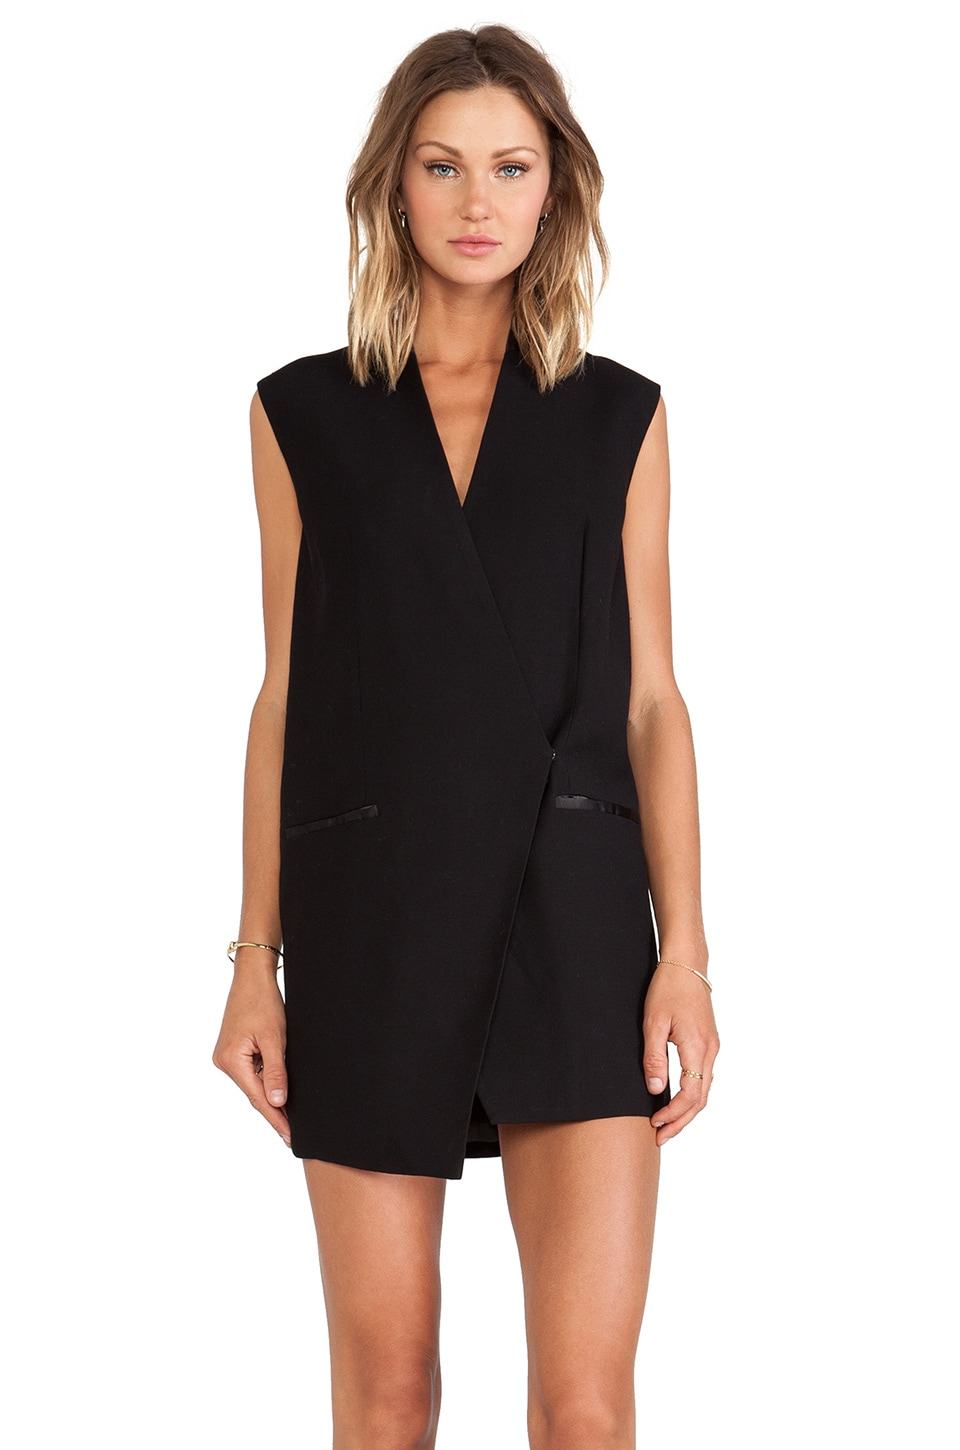 C/MEO Run Alone Vest Dress in Black